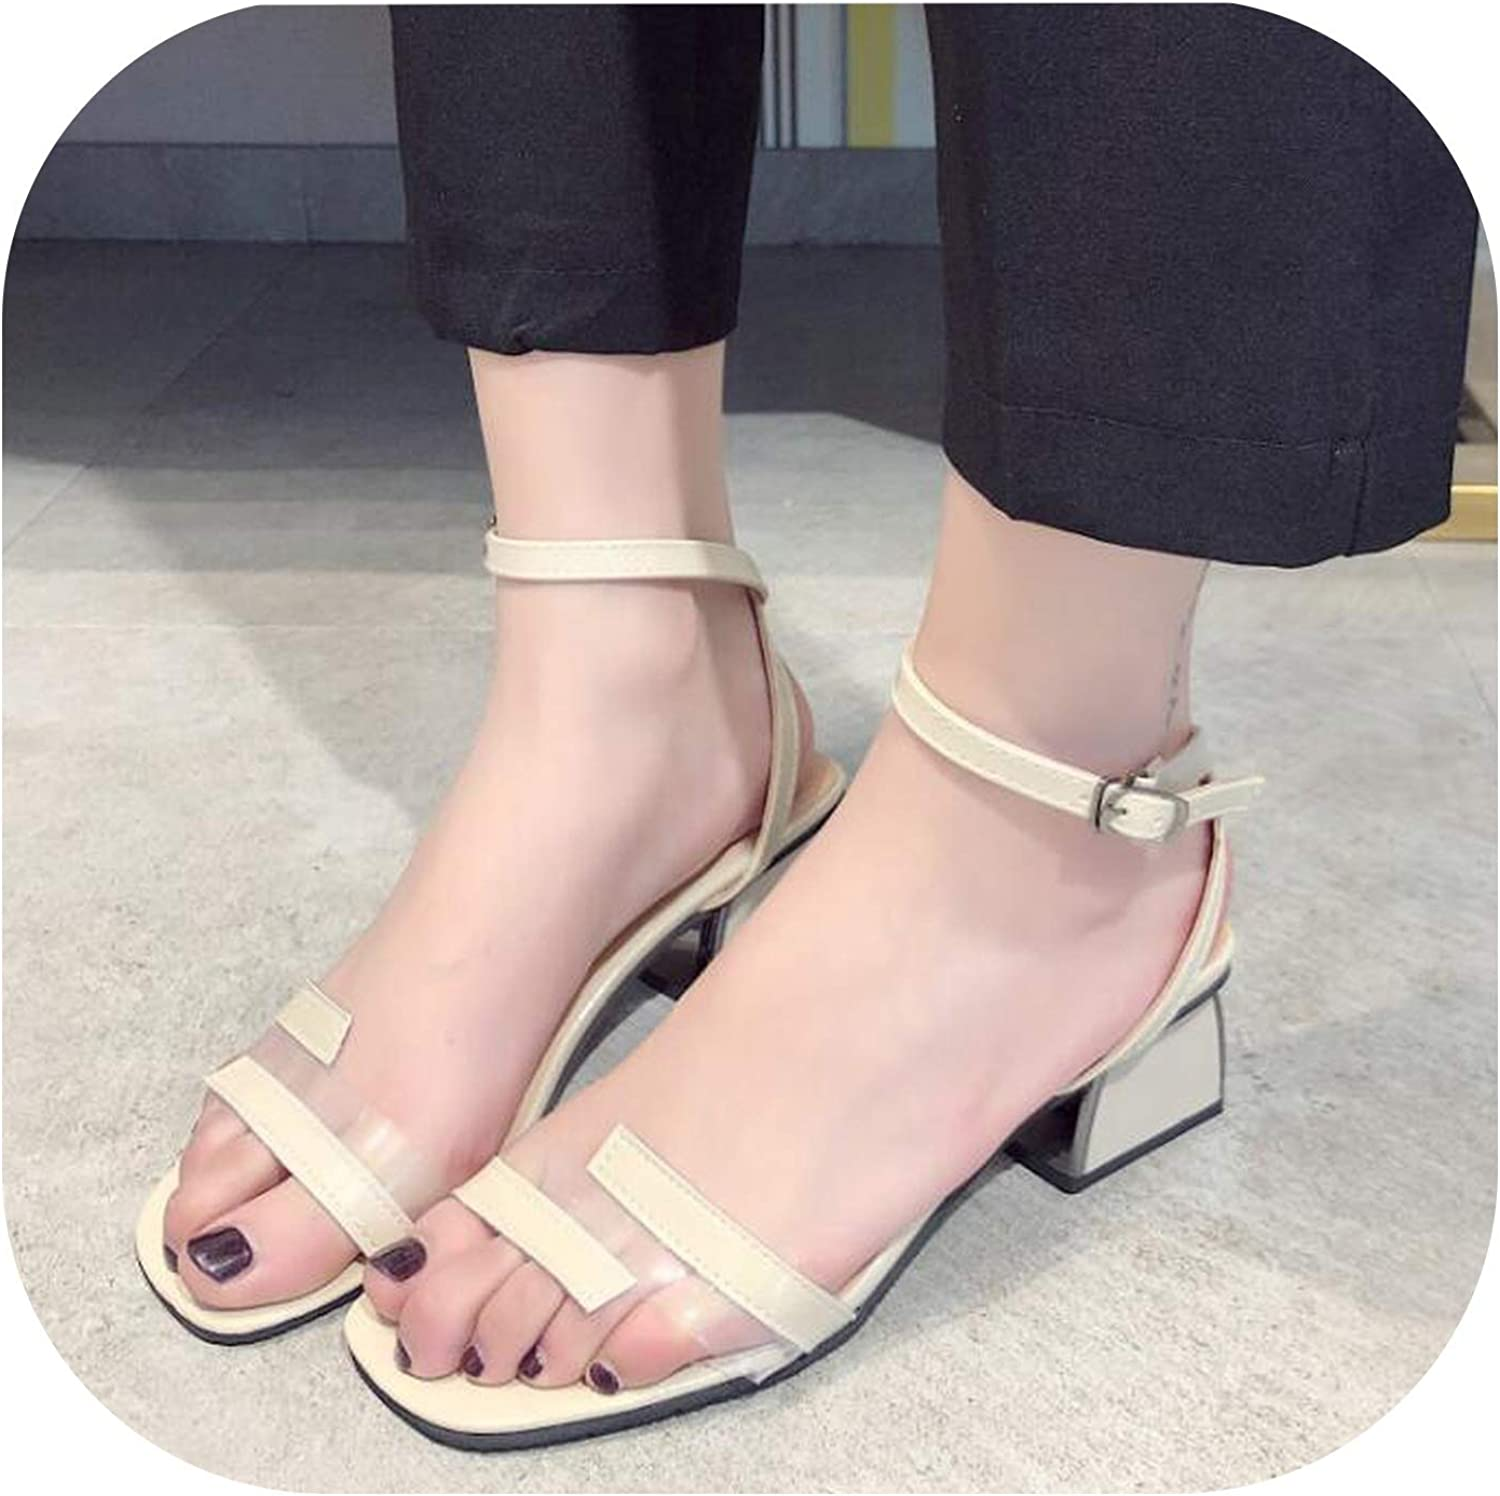 Meiguiyuan 2019 Summer Metal Buckle National Wind Wild Simple high Heels Trend Casual Women's Single shoes